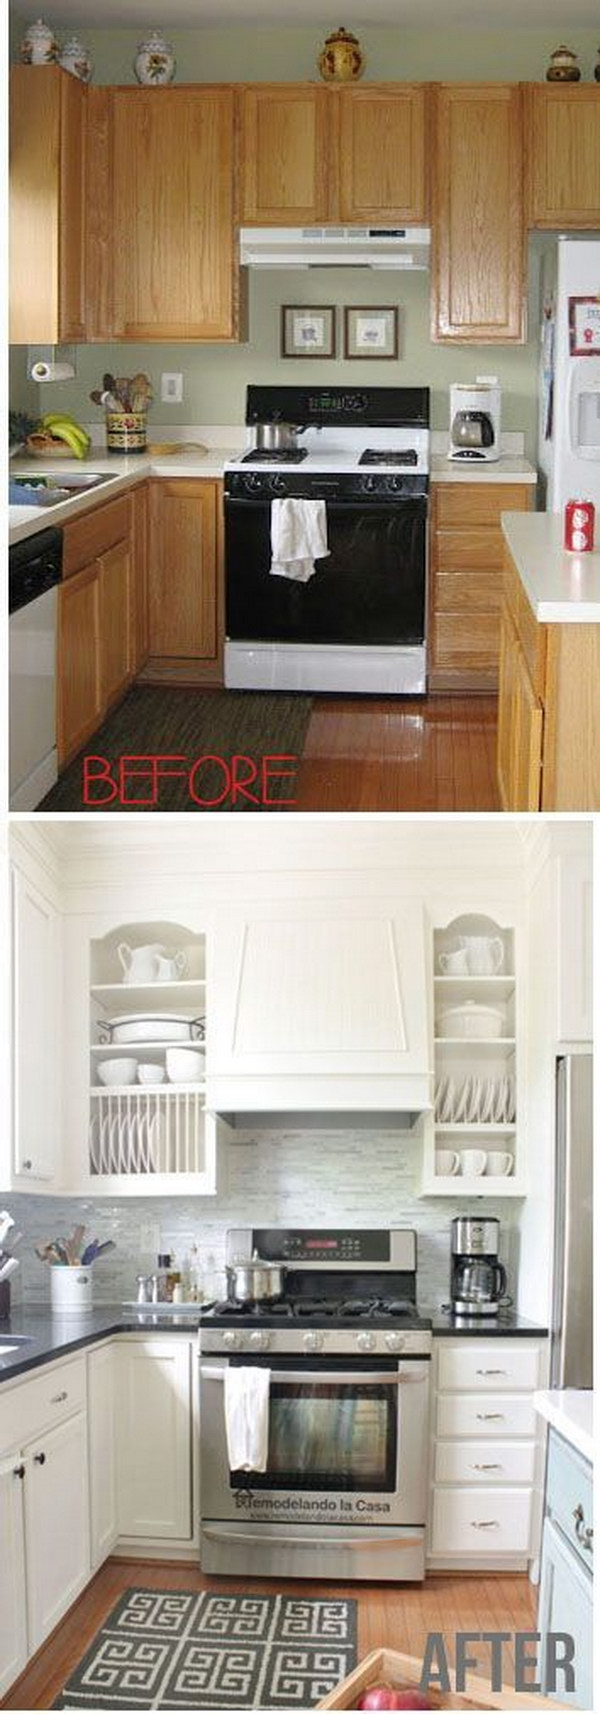 Kitchen Makeover With White Painted Cabinets.